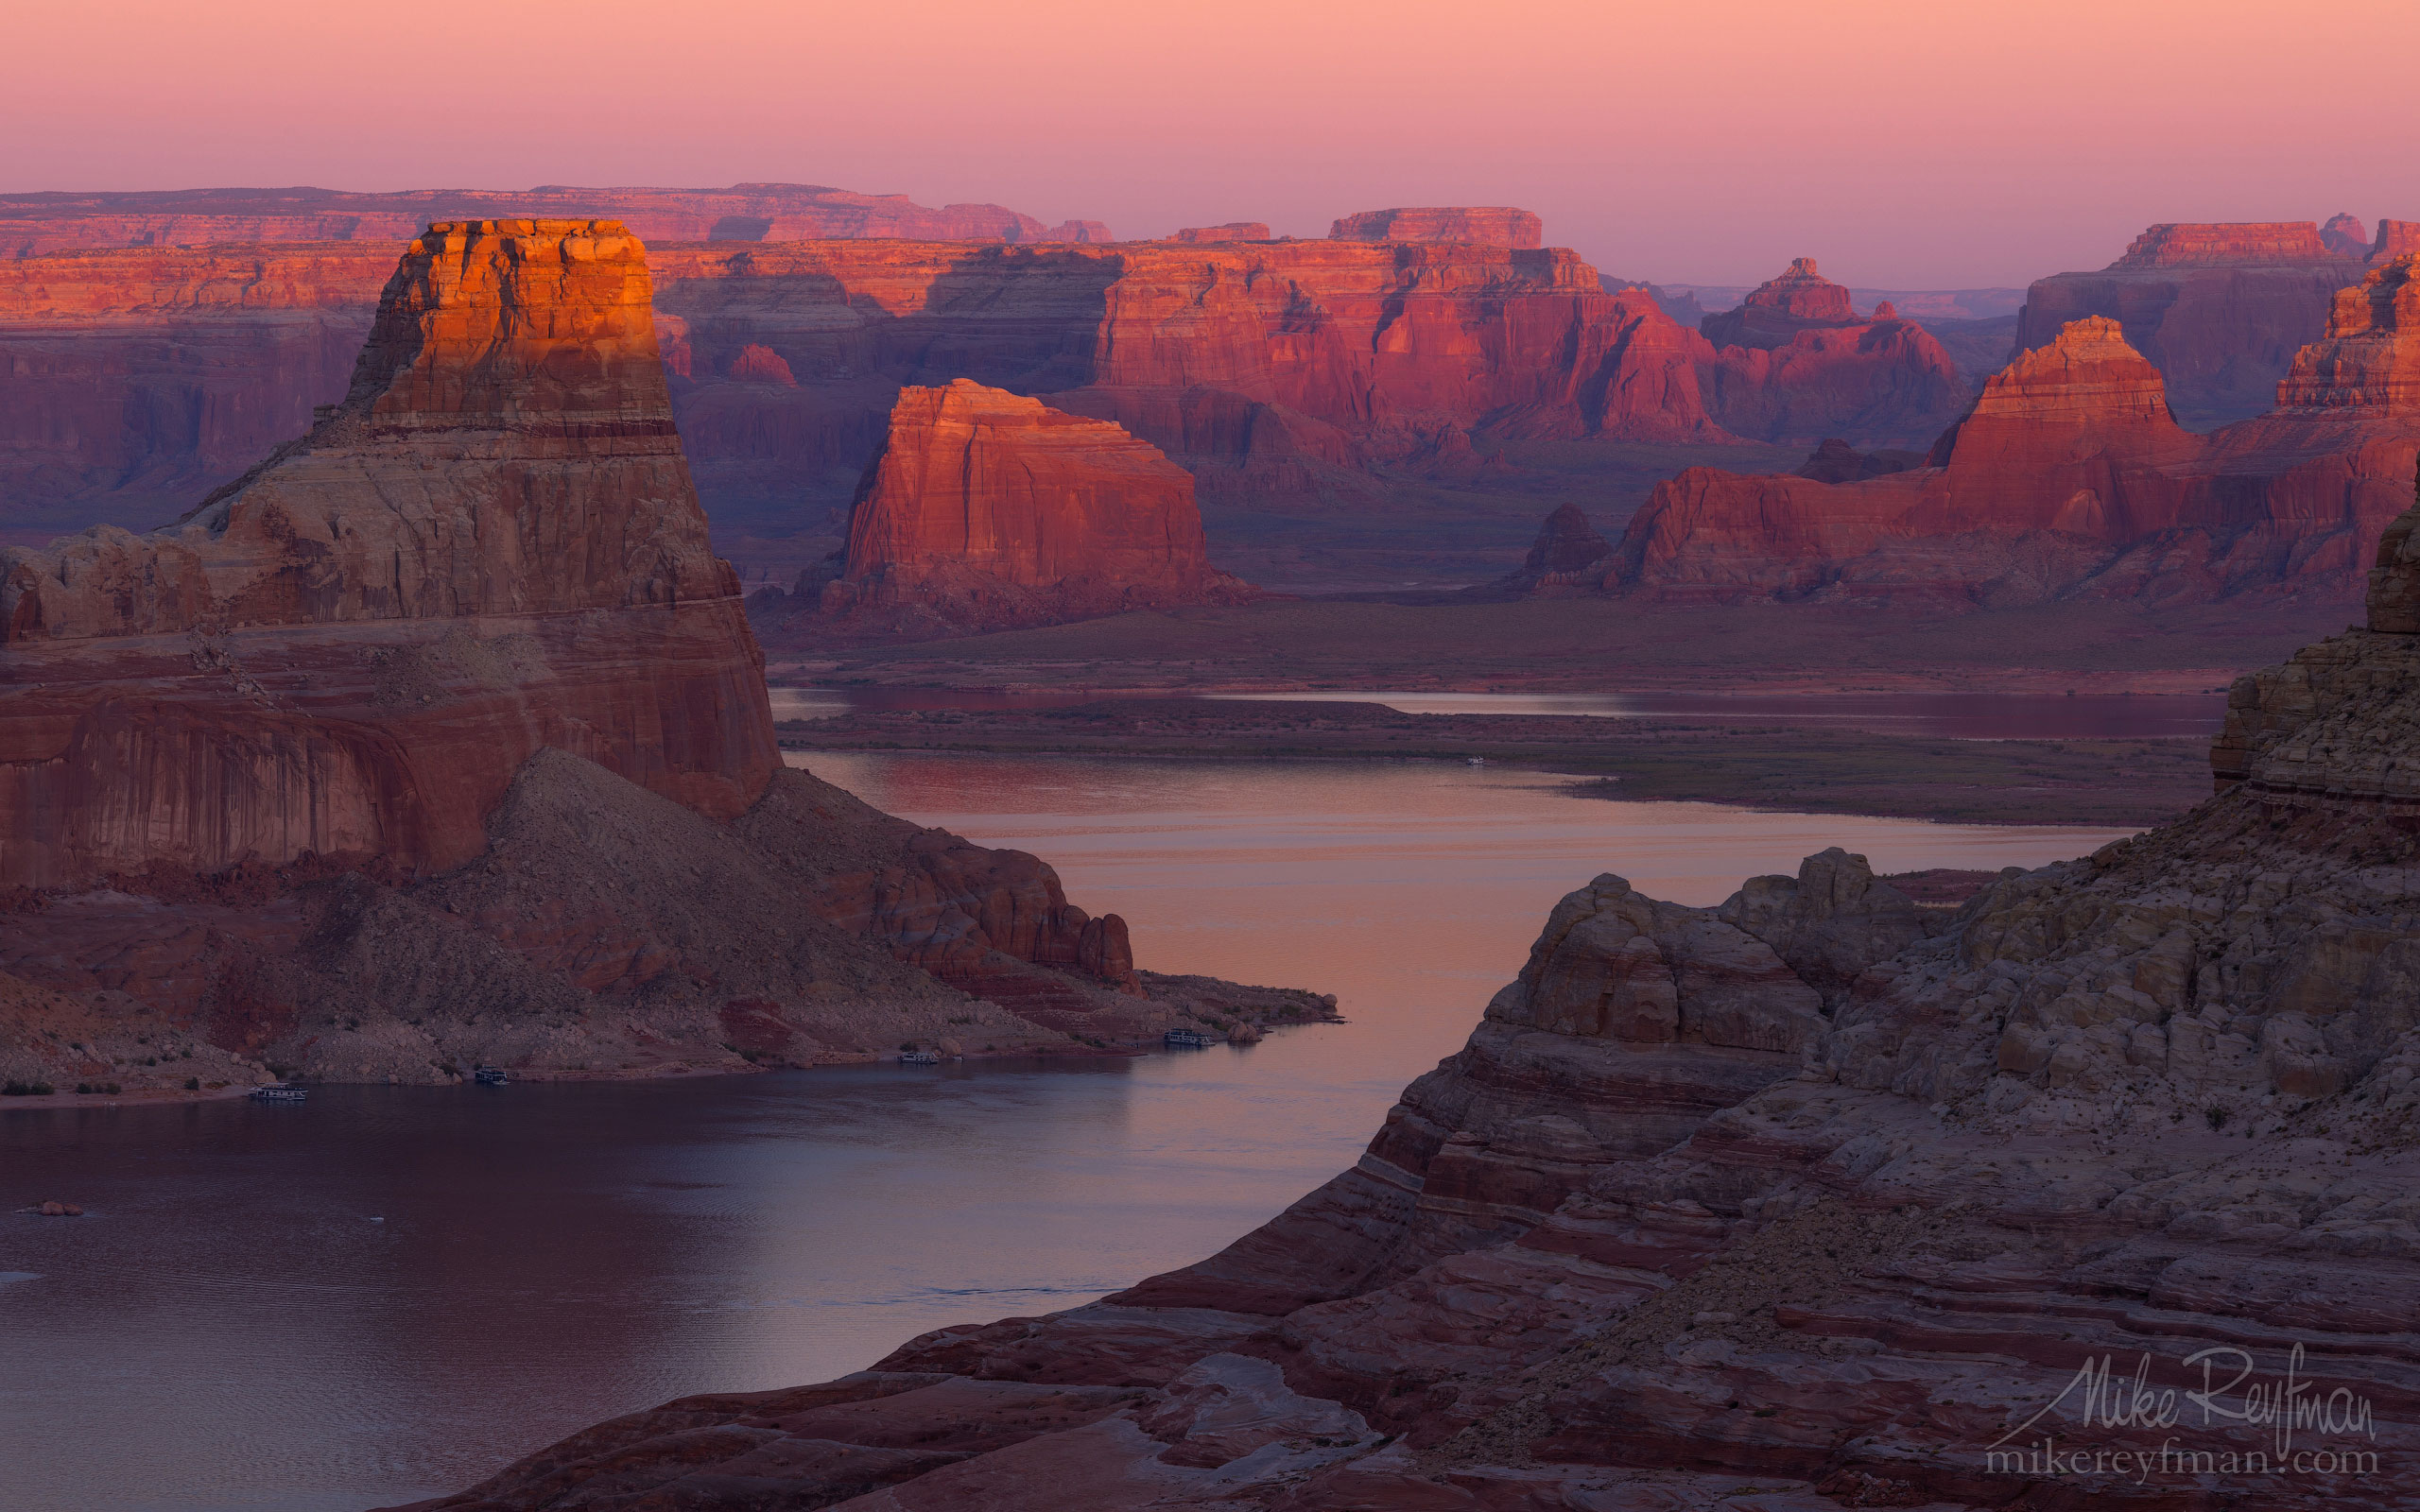 Romana Mesa, Alstrom Point. Gunsight Butte in Padre Bay. Lake Powell, Glen Canyon NRA, Uta/Arizona, USA. 020-LP3_O3X5950.jpg - Lake Powell, Glen Canyon NAR. Colorado and Sun Juan Rivers. Utah/Arizona, USA  - Mike Reyfman Photography